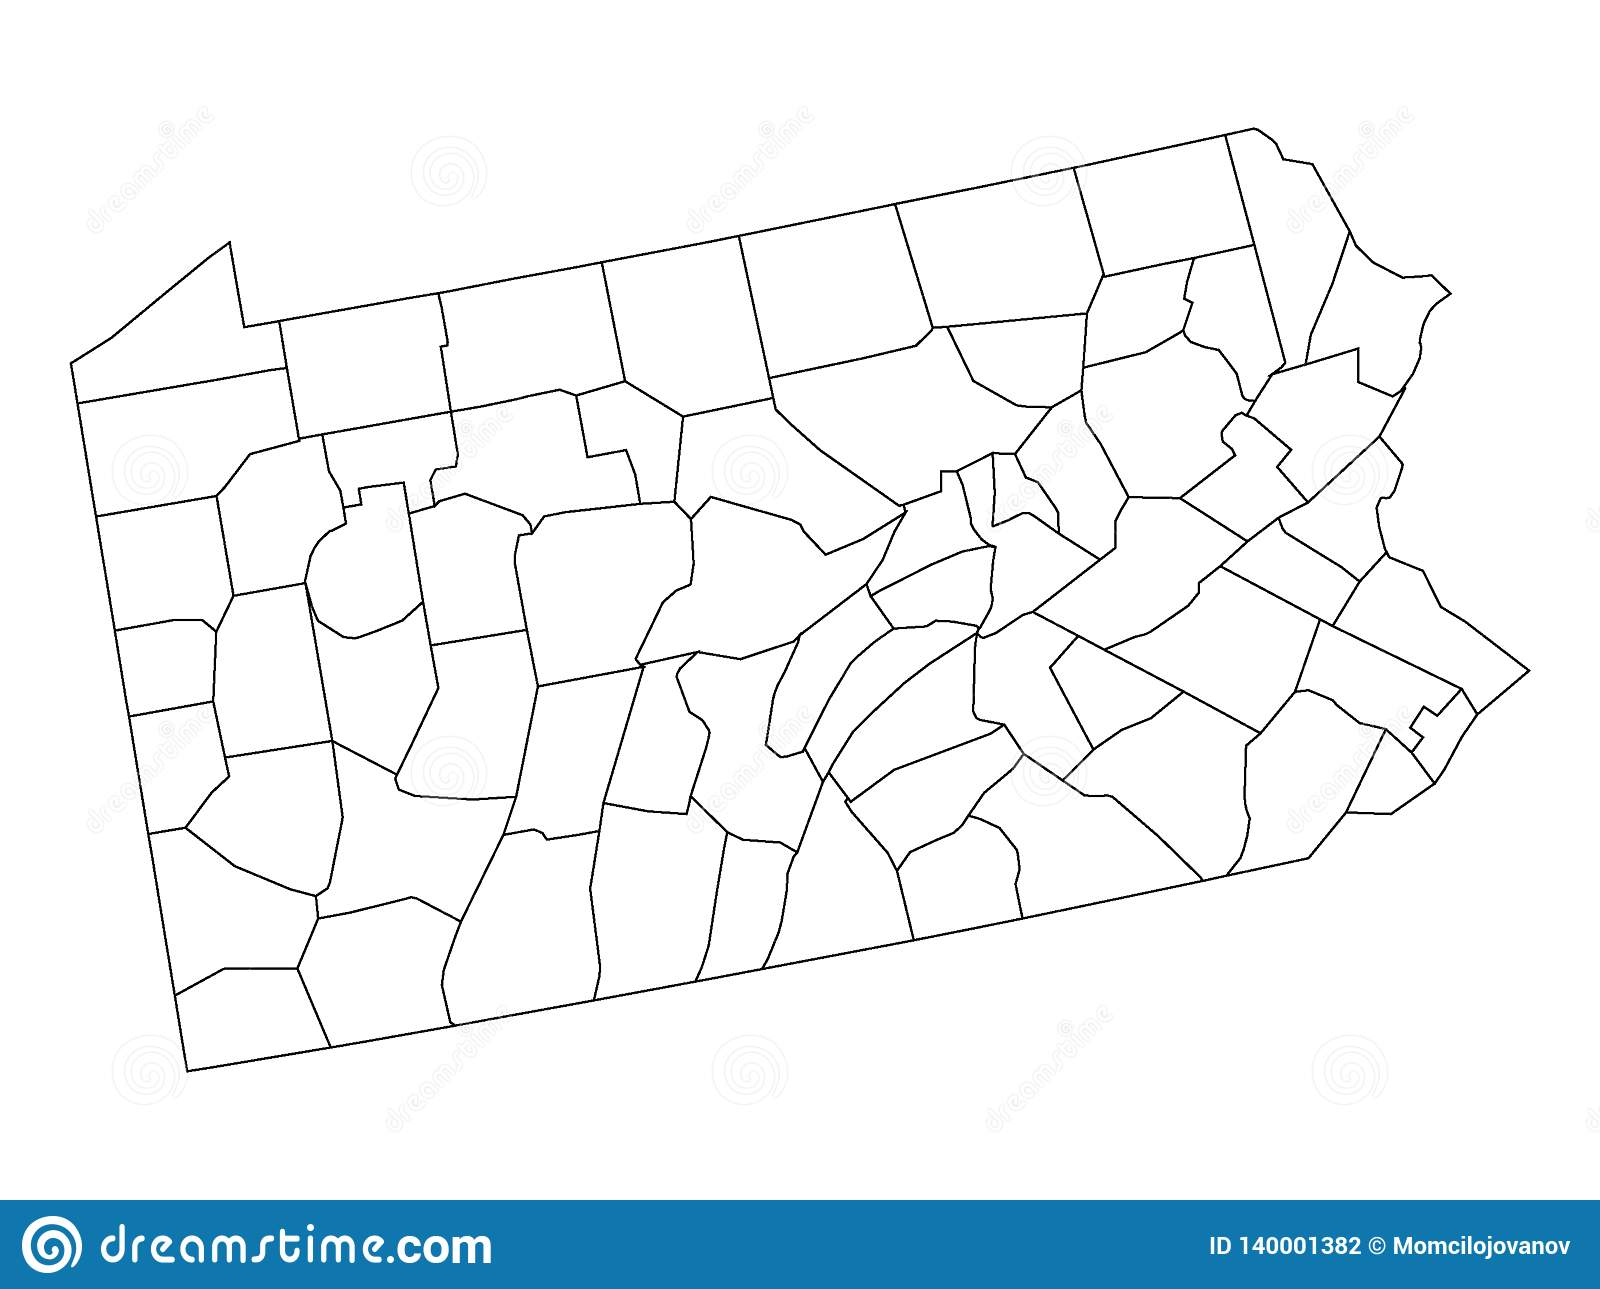 Counties Map Of US State Of Pennsylvania Stock Vector ... on state map of pennsylvania, united states of pennsylvania, cities in western pennsylvania, street maps of pennsylvania, downloadable map of pennsylvania, us states pennsylvania, usa map pennsylvania, bucknell map of pennsylvania, atlas map of pennsylvania, the shown on us map pennsylvania, wikimedia maps pennsylvania,